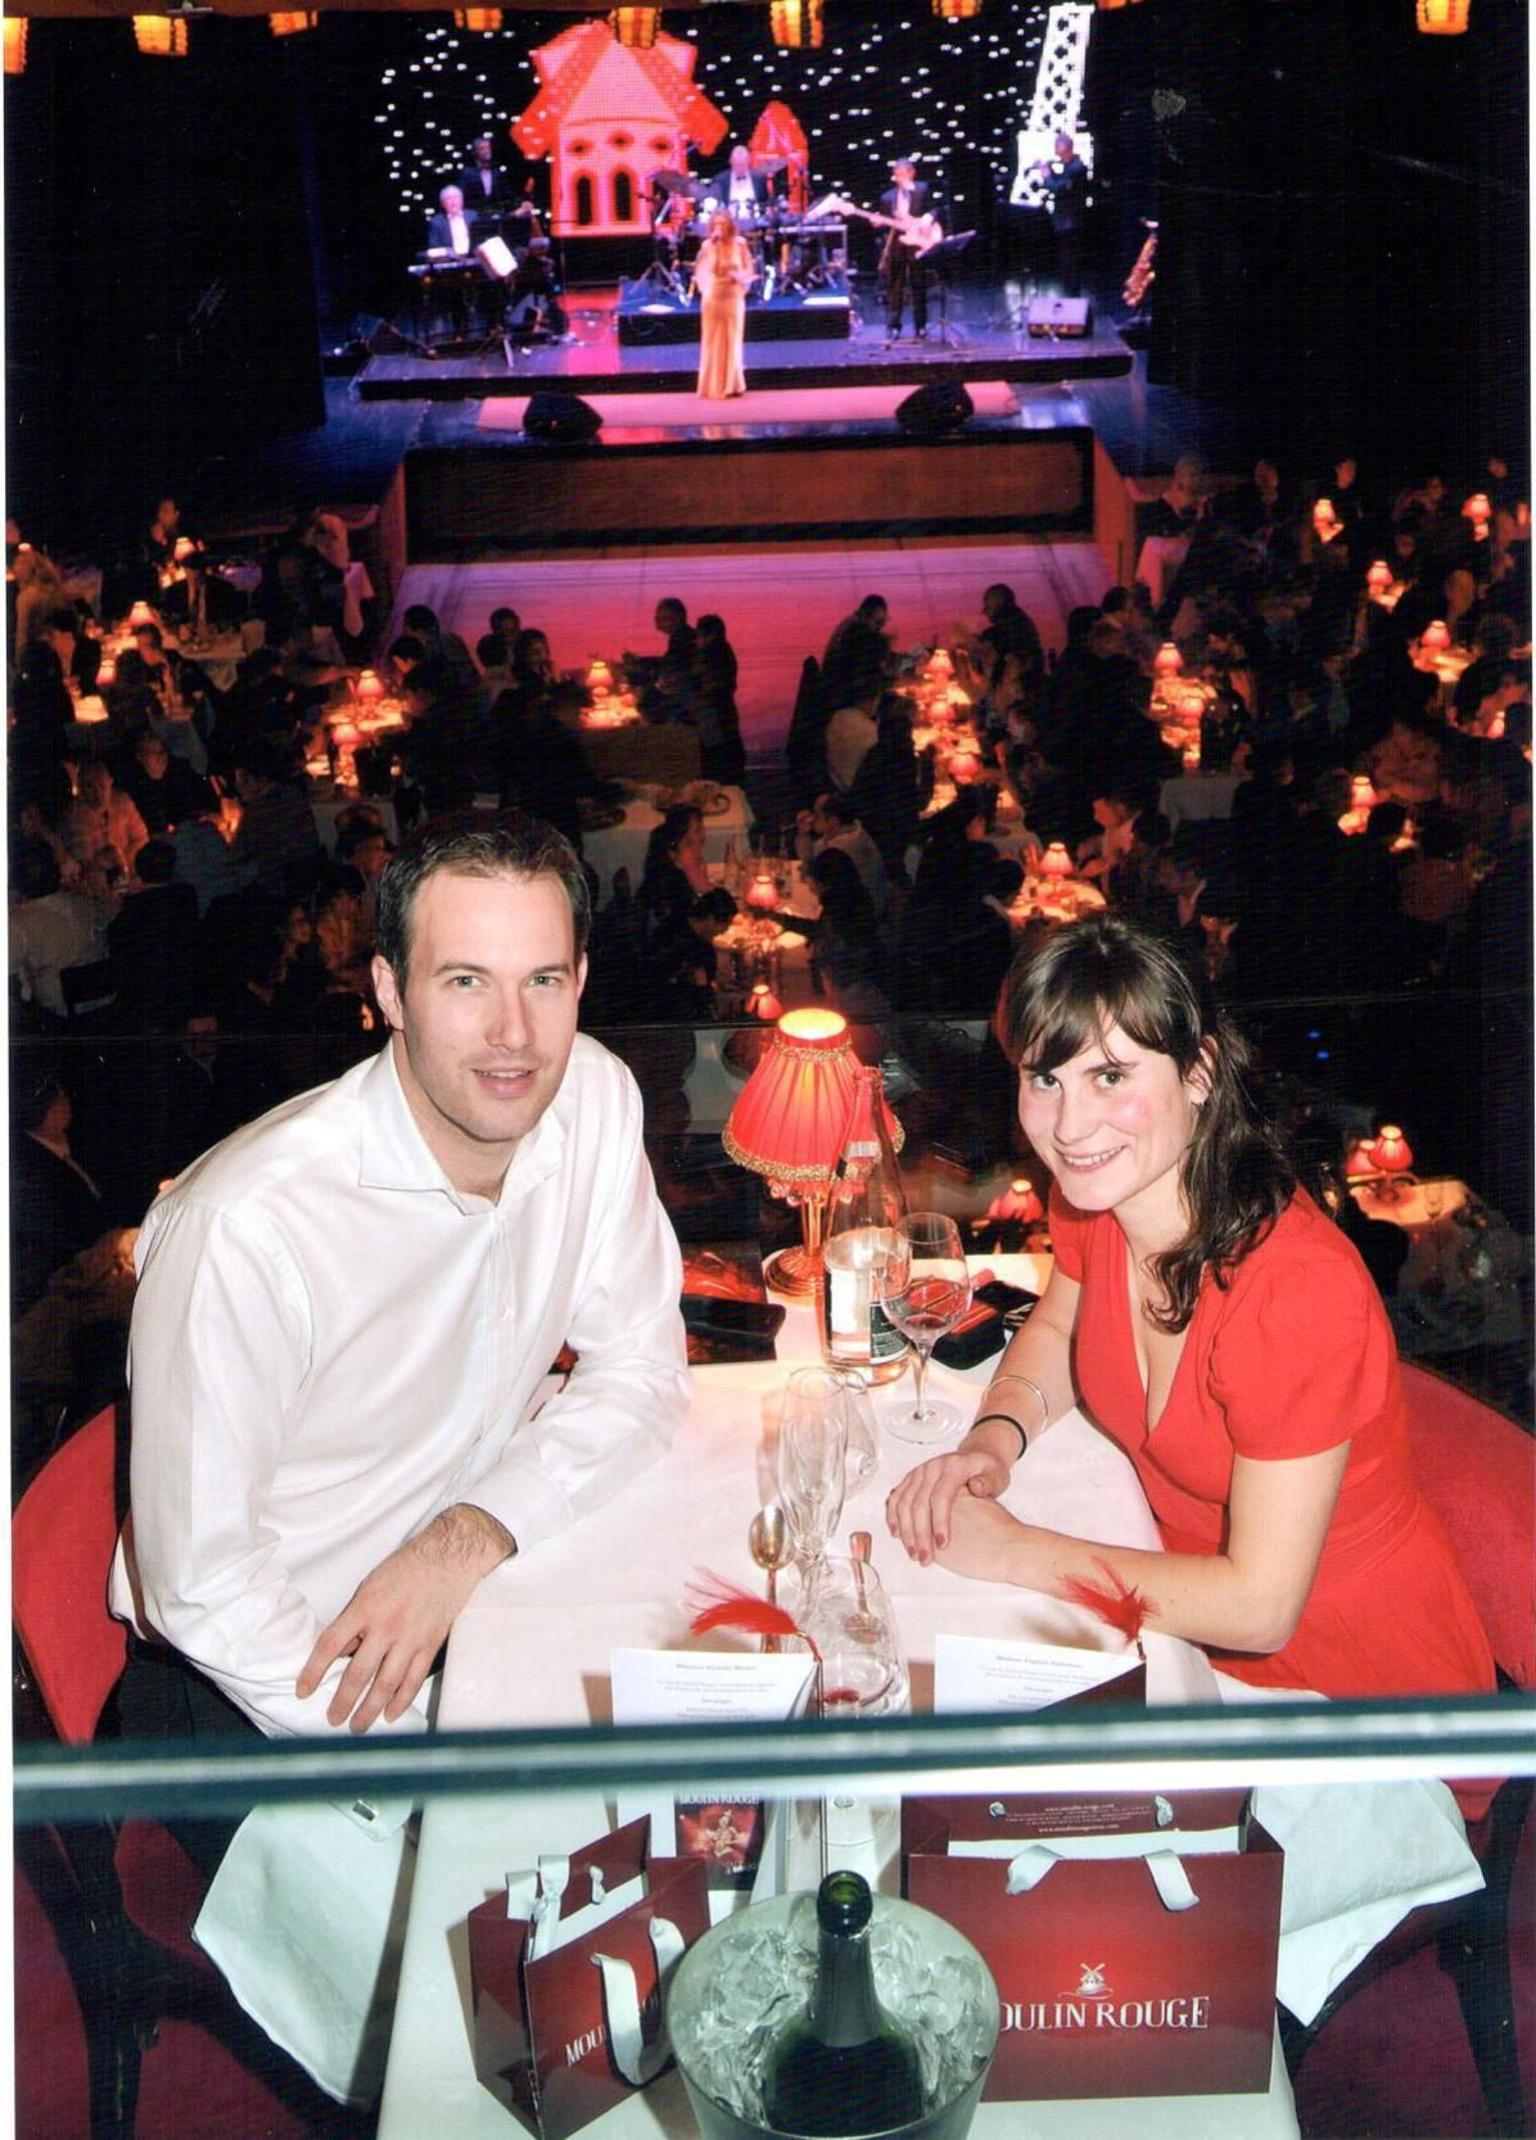 MAIS FOTOS, Paris Moulin Rouge Show with Exclusive VIP Seating & 4-Course Dinner